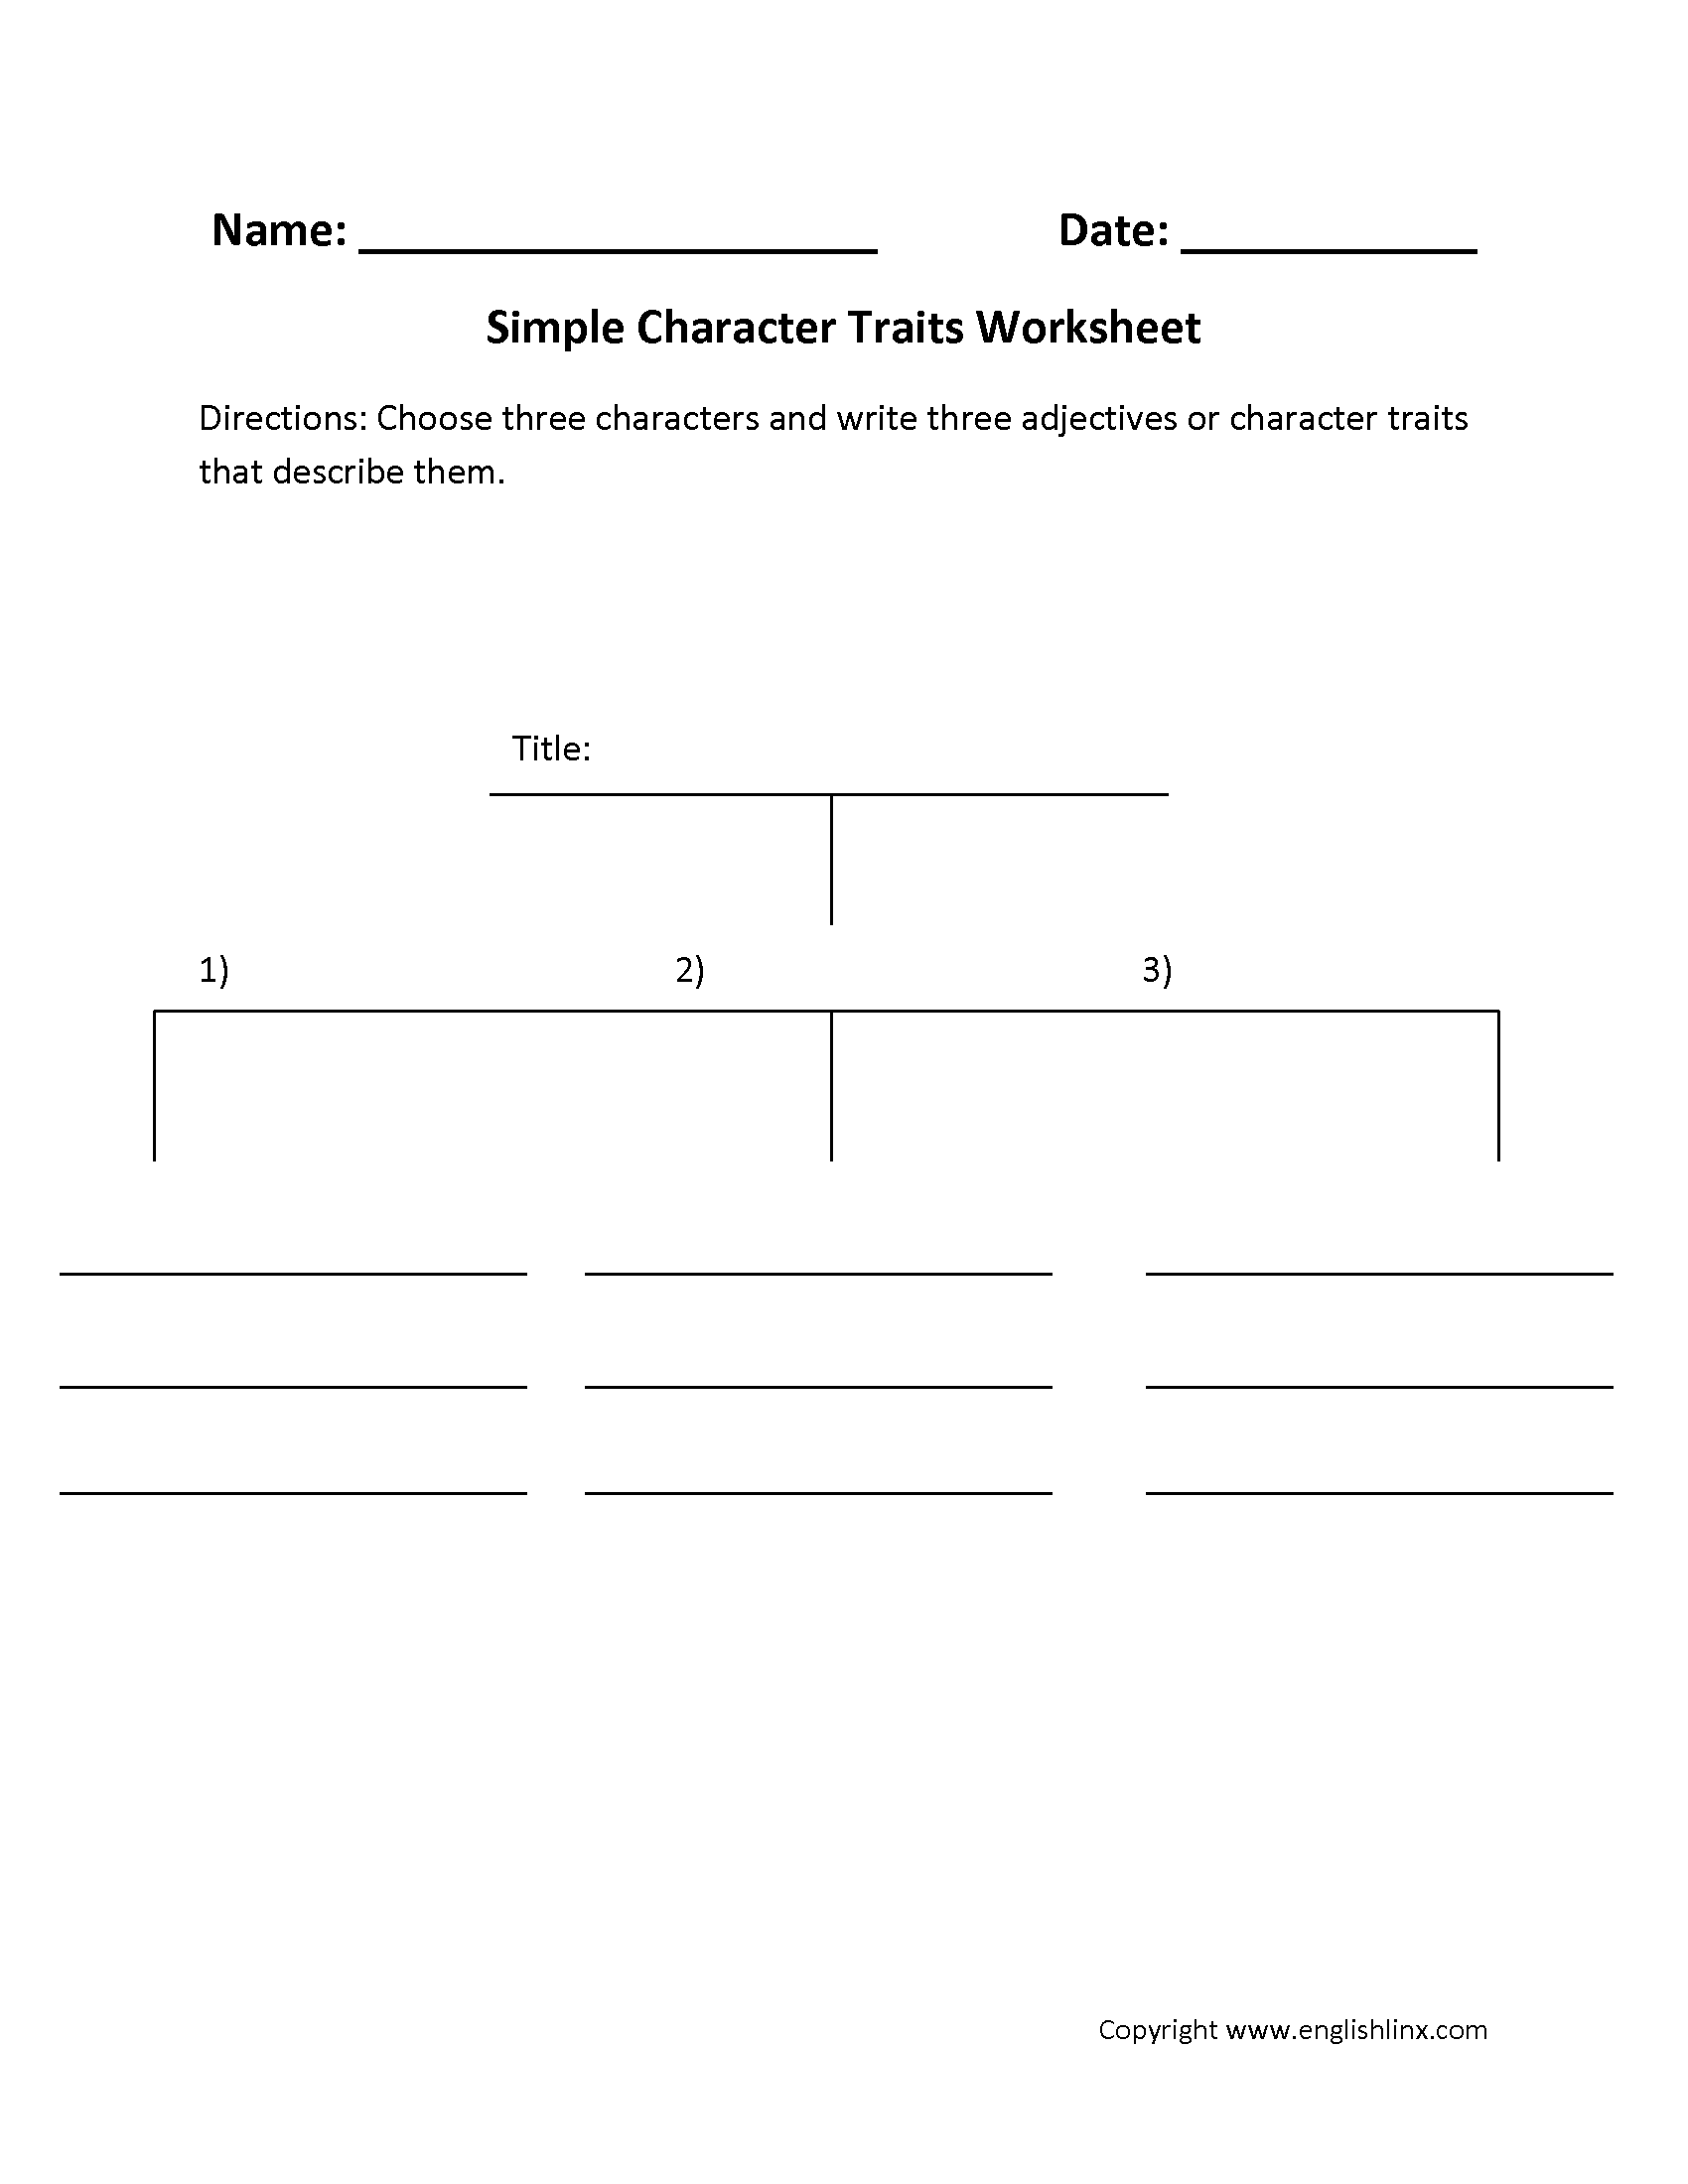 Simple Character Traits Characterysis Worksheets